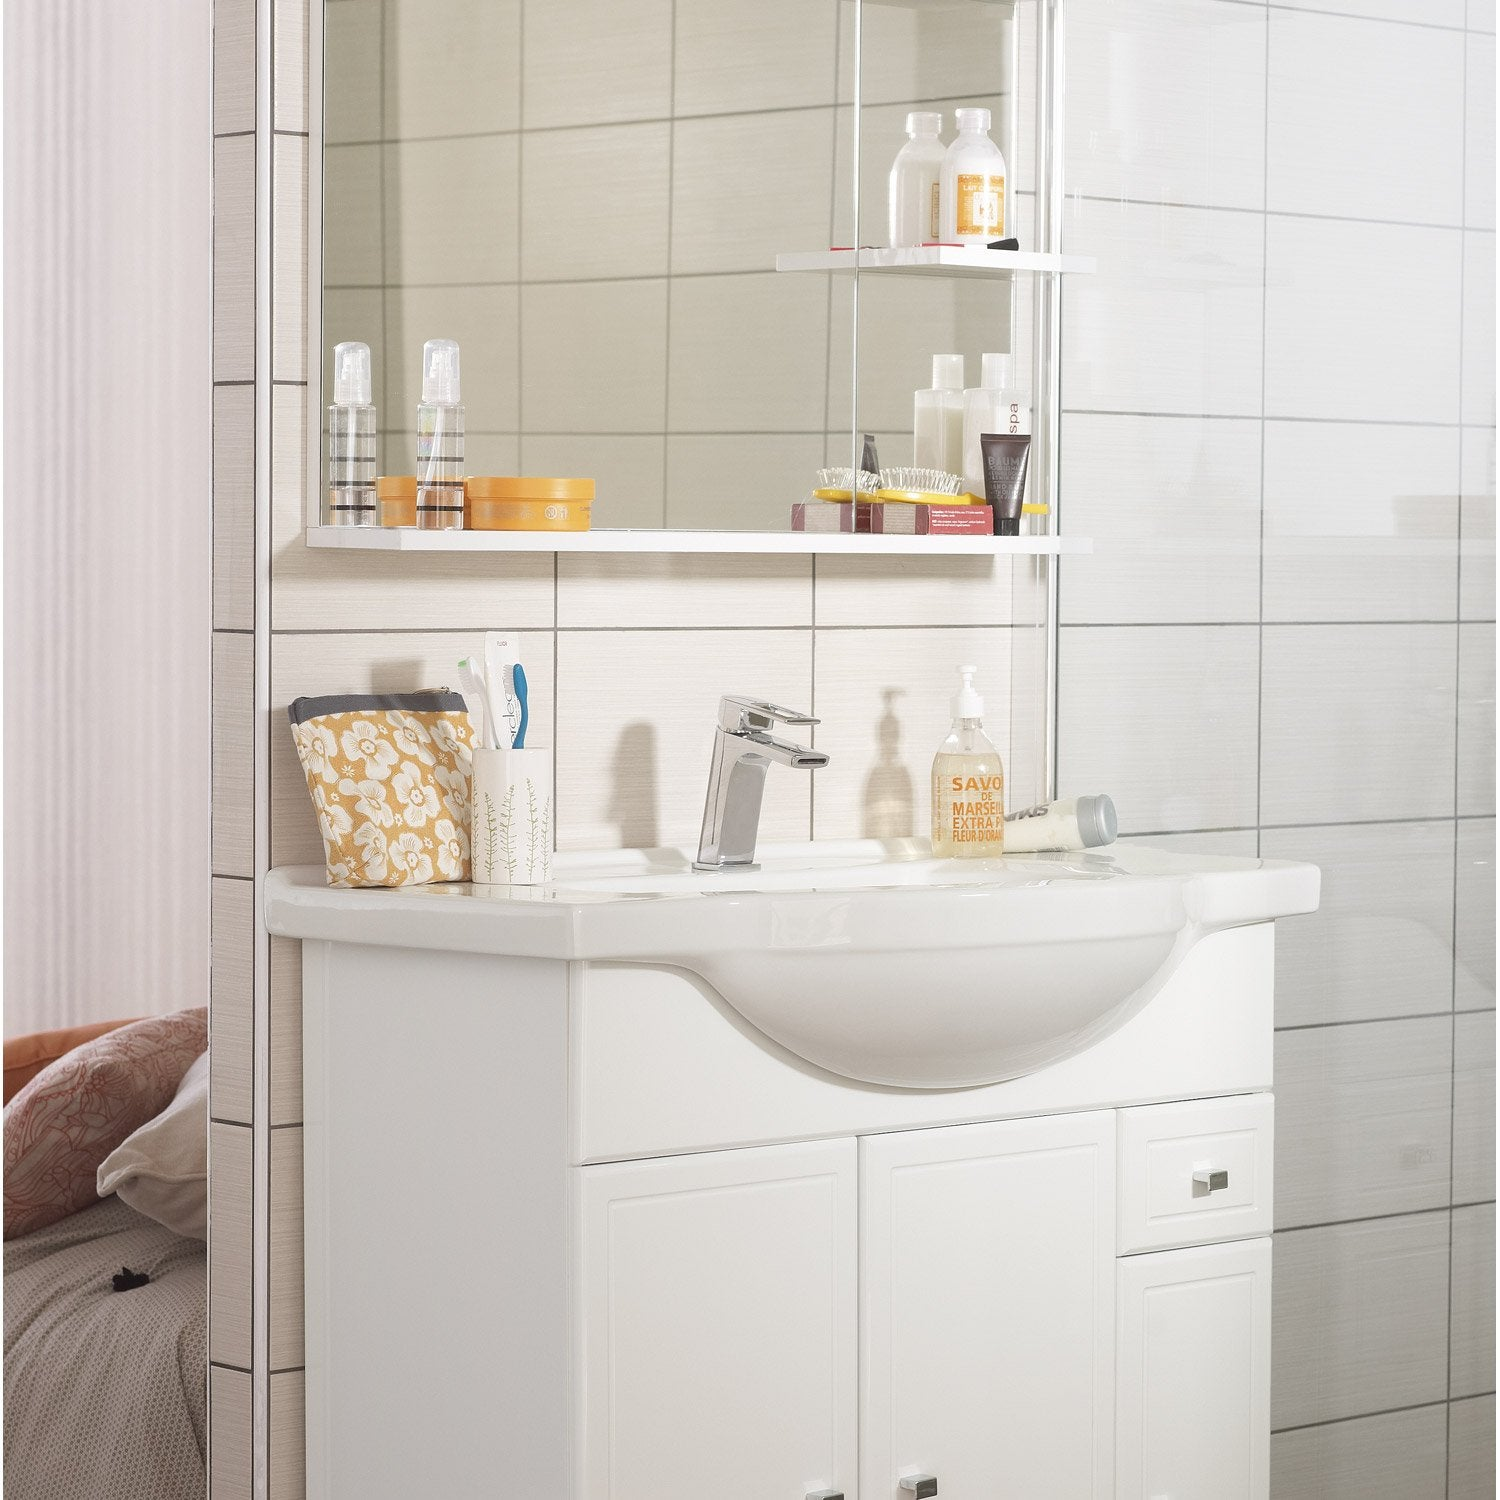 Meuble vasque 85 cm galice leroy merlin for Meuble salle de bain vasque a poser leroy merlin